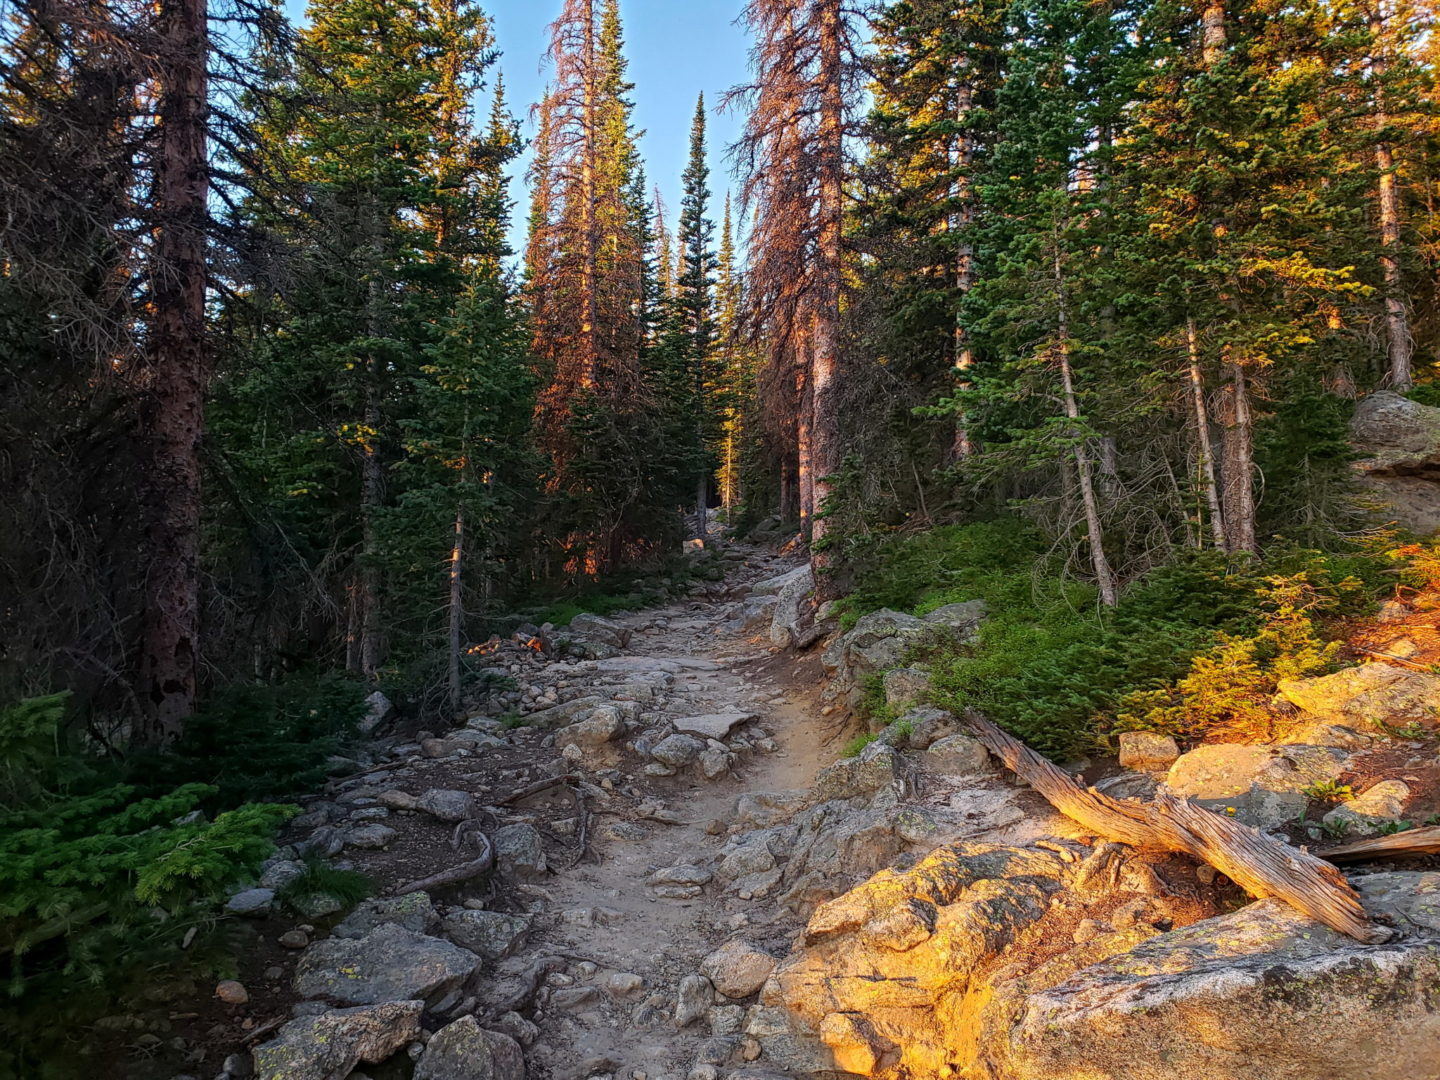 Dense forest along the Flattop Mtn. trail